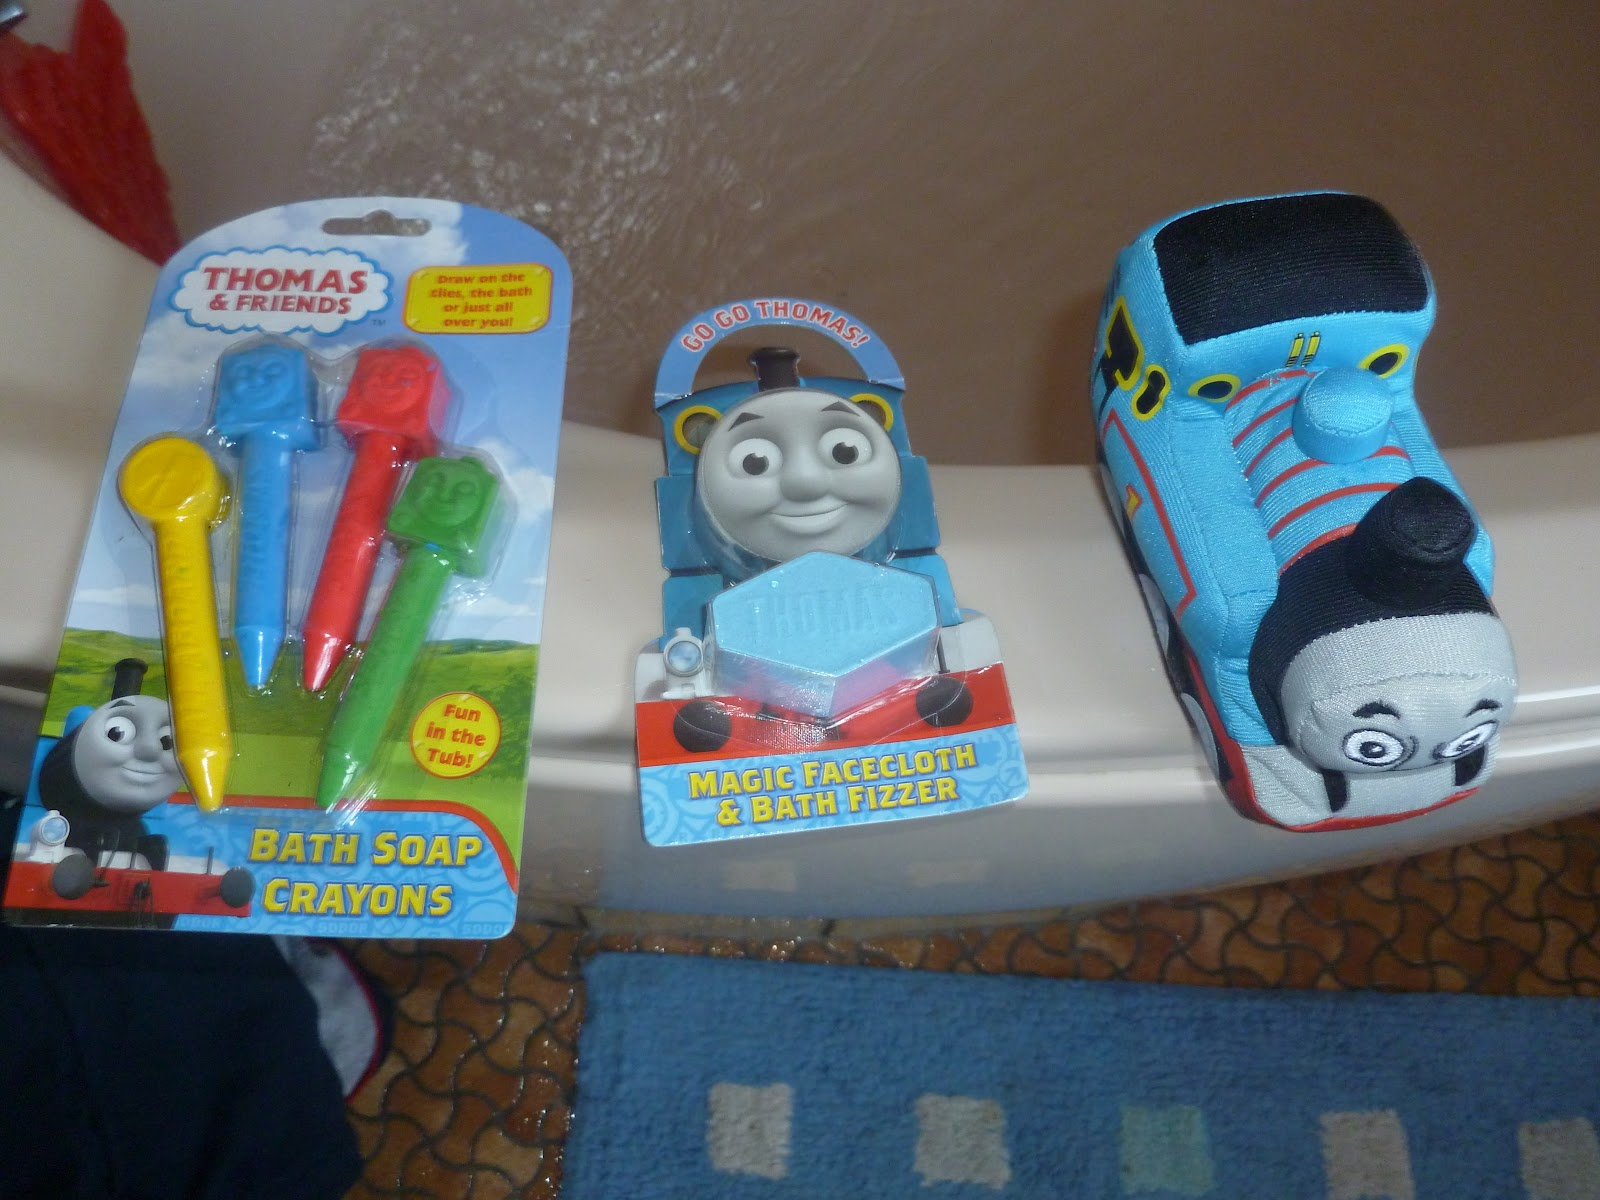 Madhouse Family Reviews: Thomas the Tank Engine Bathtime Products review